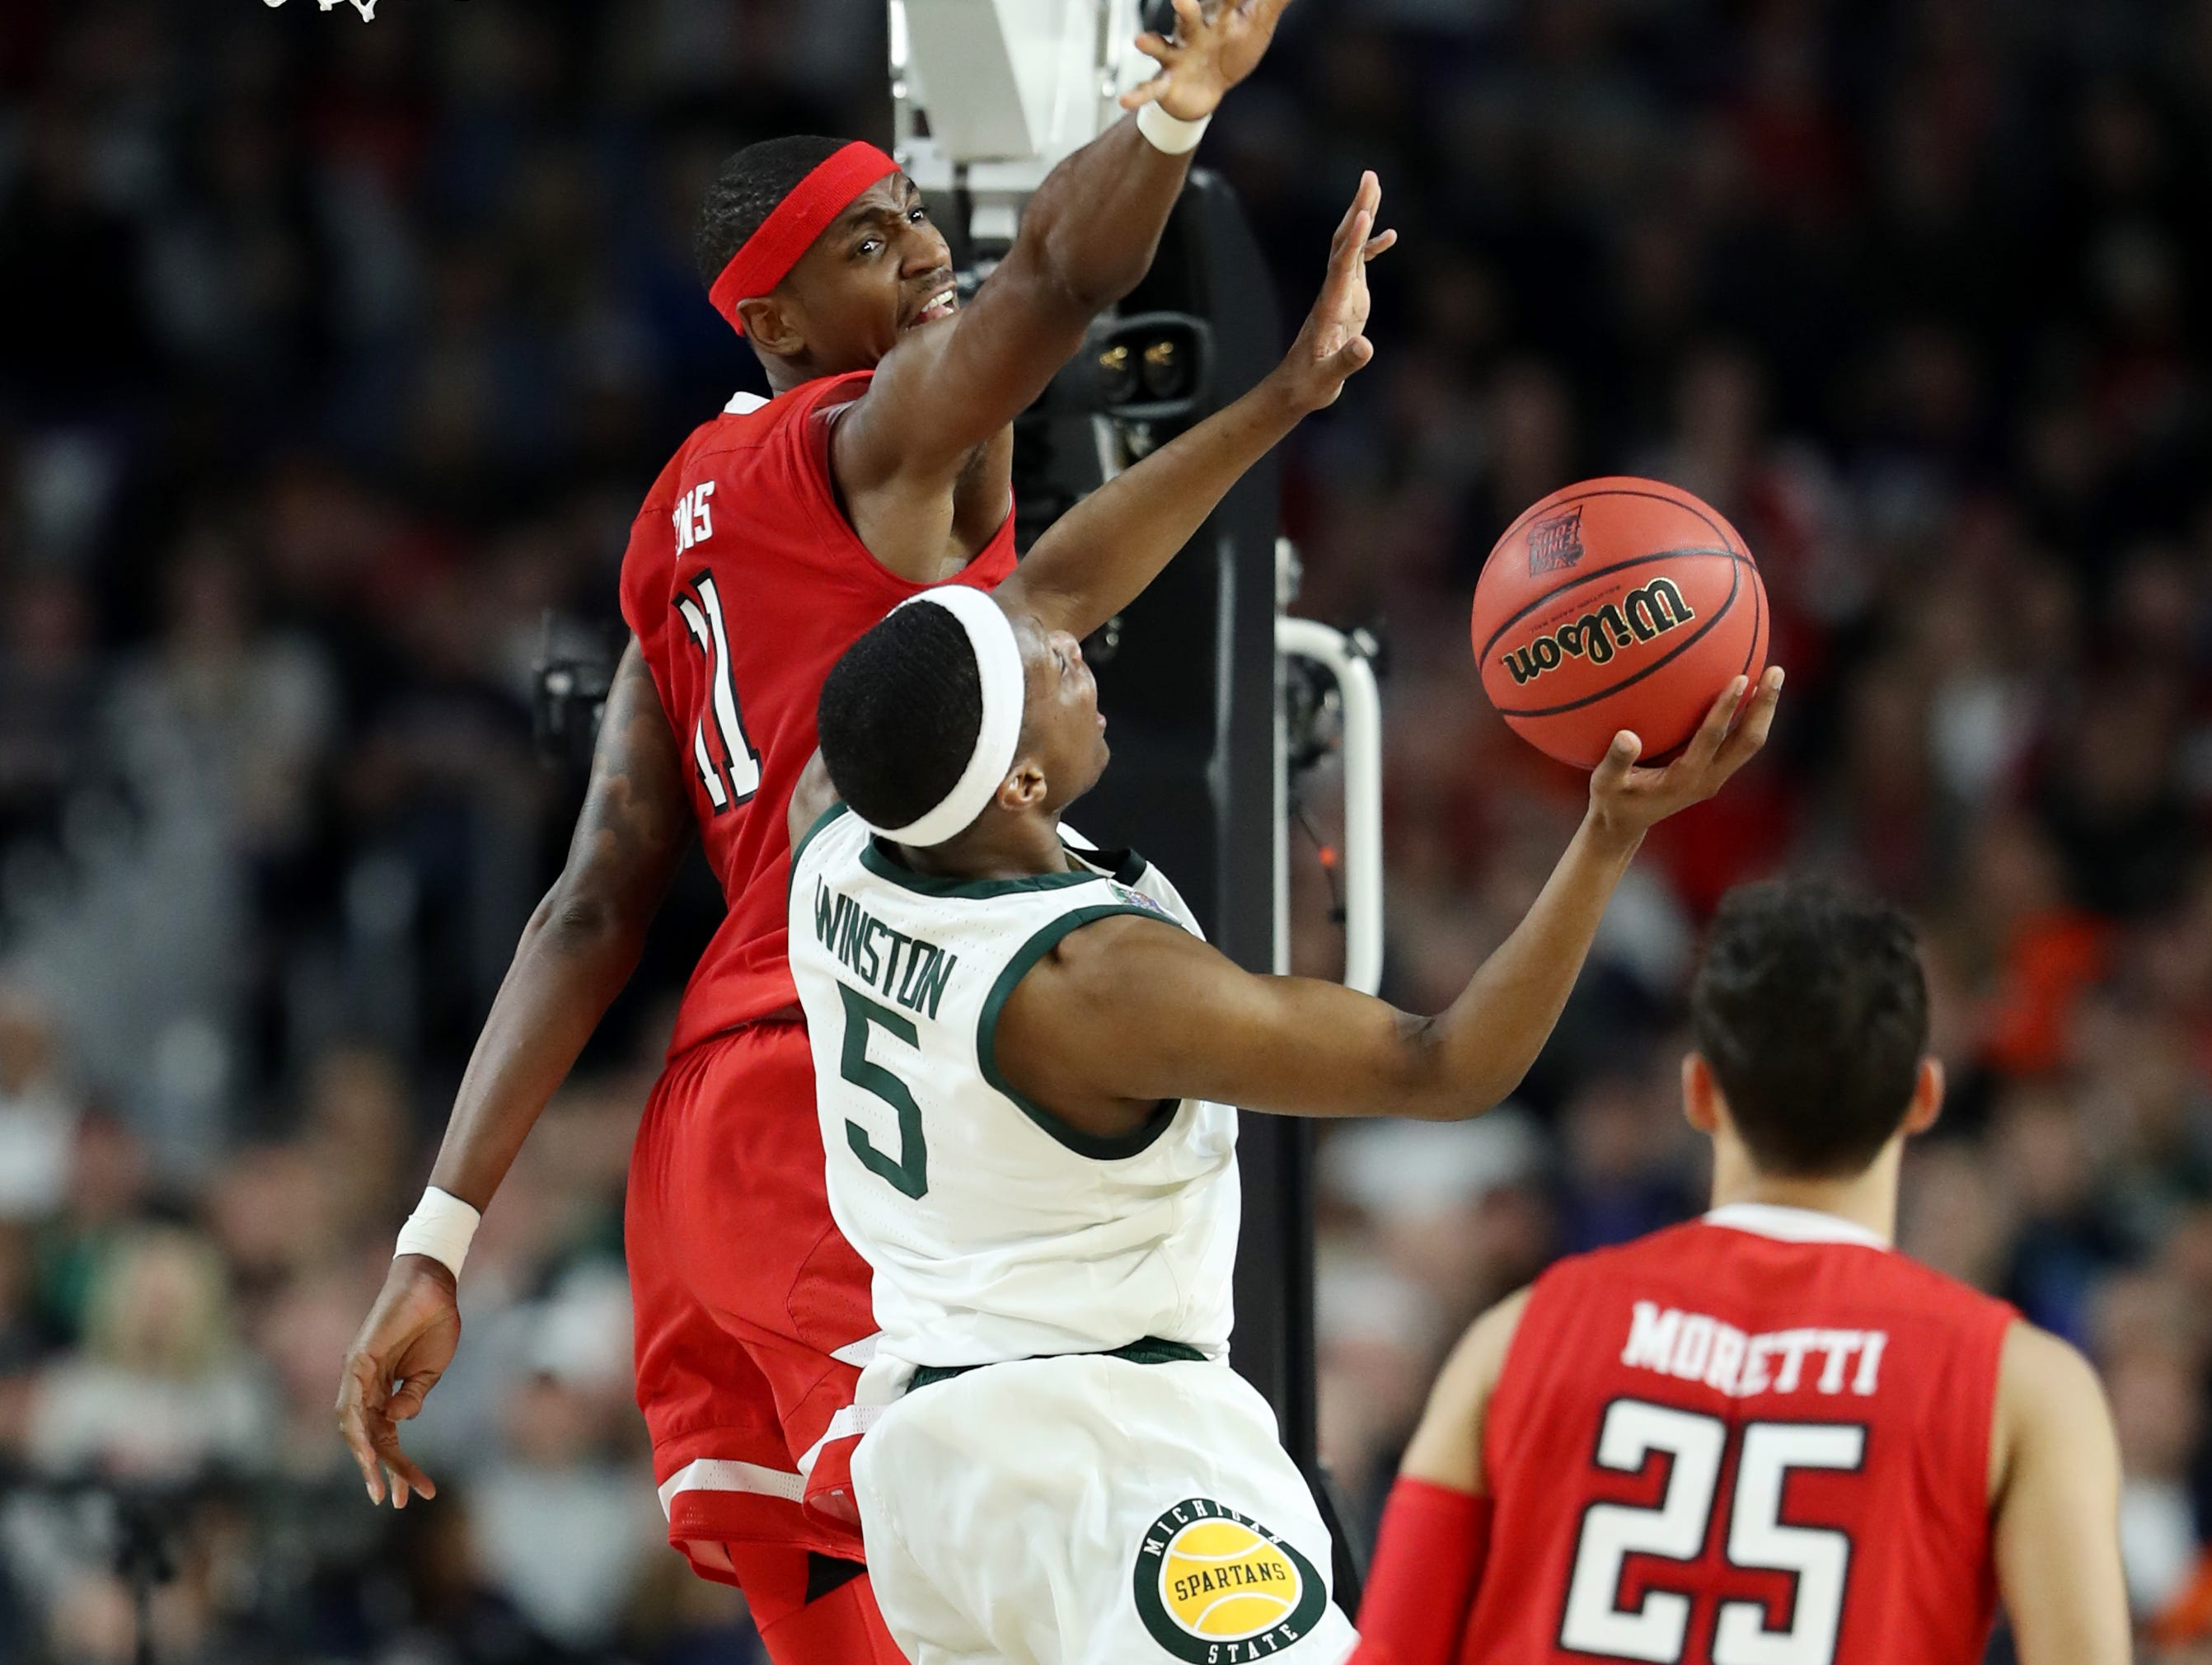 Michigan State guard Cassius Winston (5) looks to shoot the ball around Texas Tech forward Tariq Owens (11) in the first half of the Spartan's Final Four game at U.S. Bank Stadium in Minneapolis, Minnesota on Saturday, April 06, 2019.